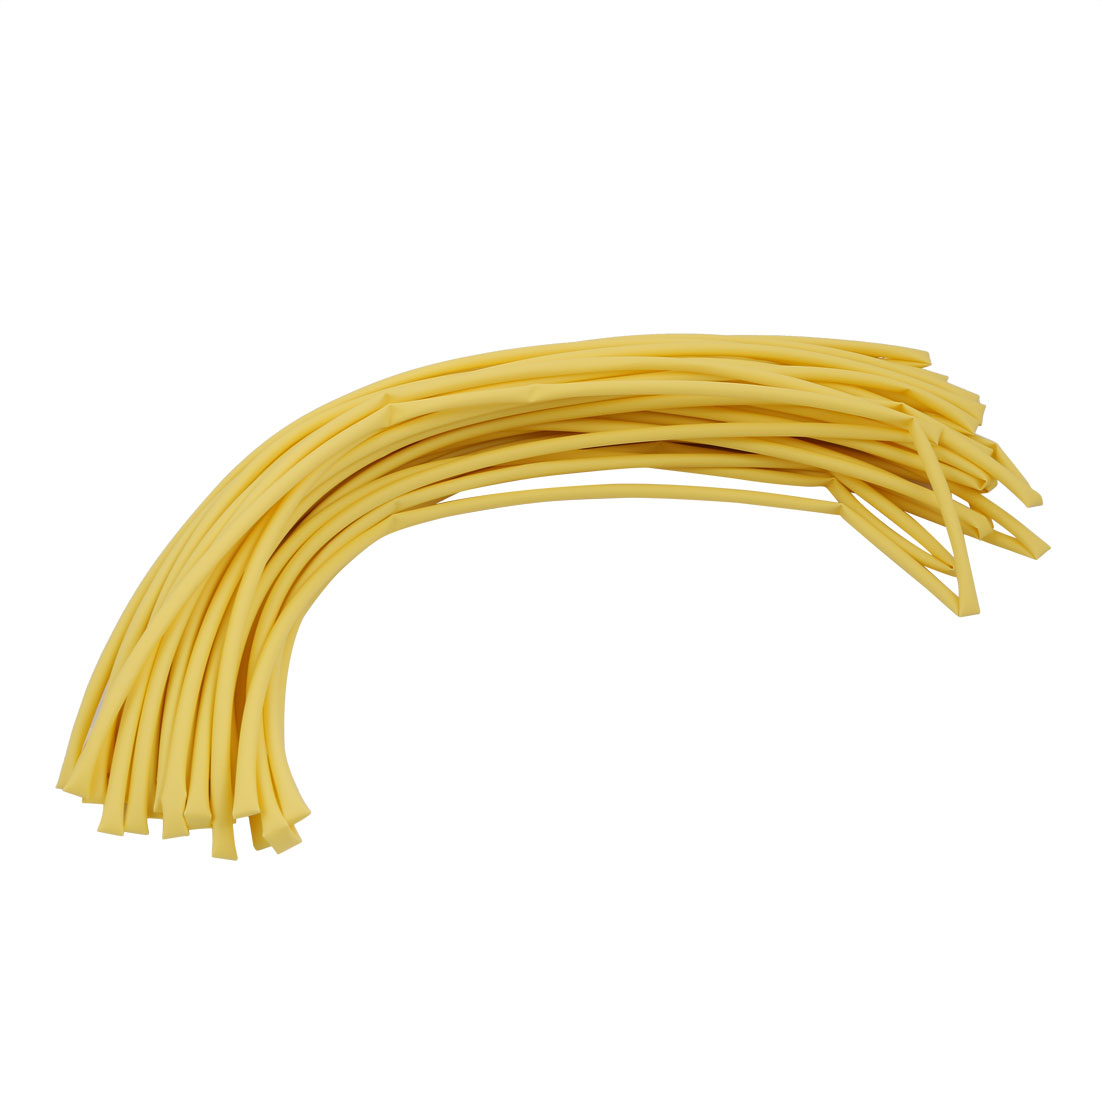 25M 0.2in Inner Dia Polyolefin Flame Retardant Tube Yellow for Wire Repairing